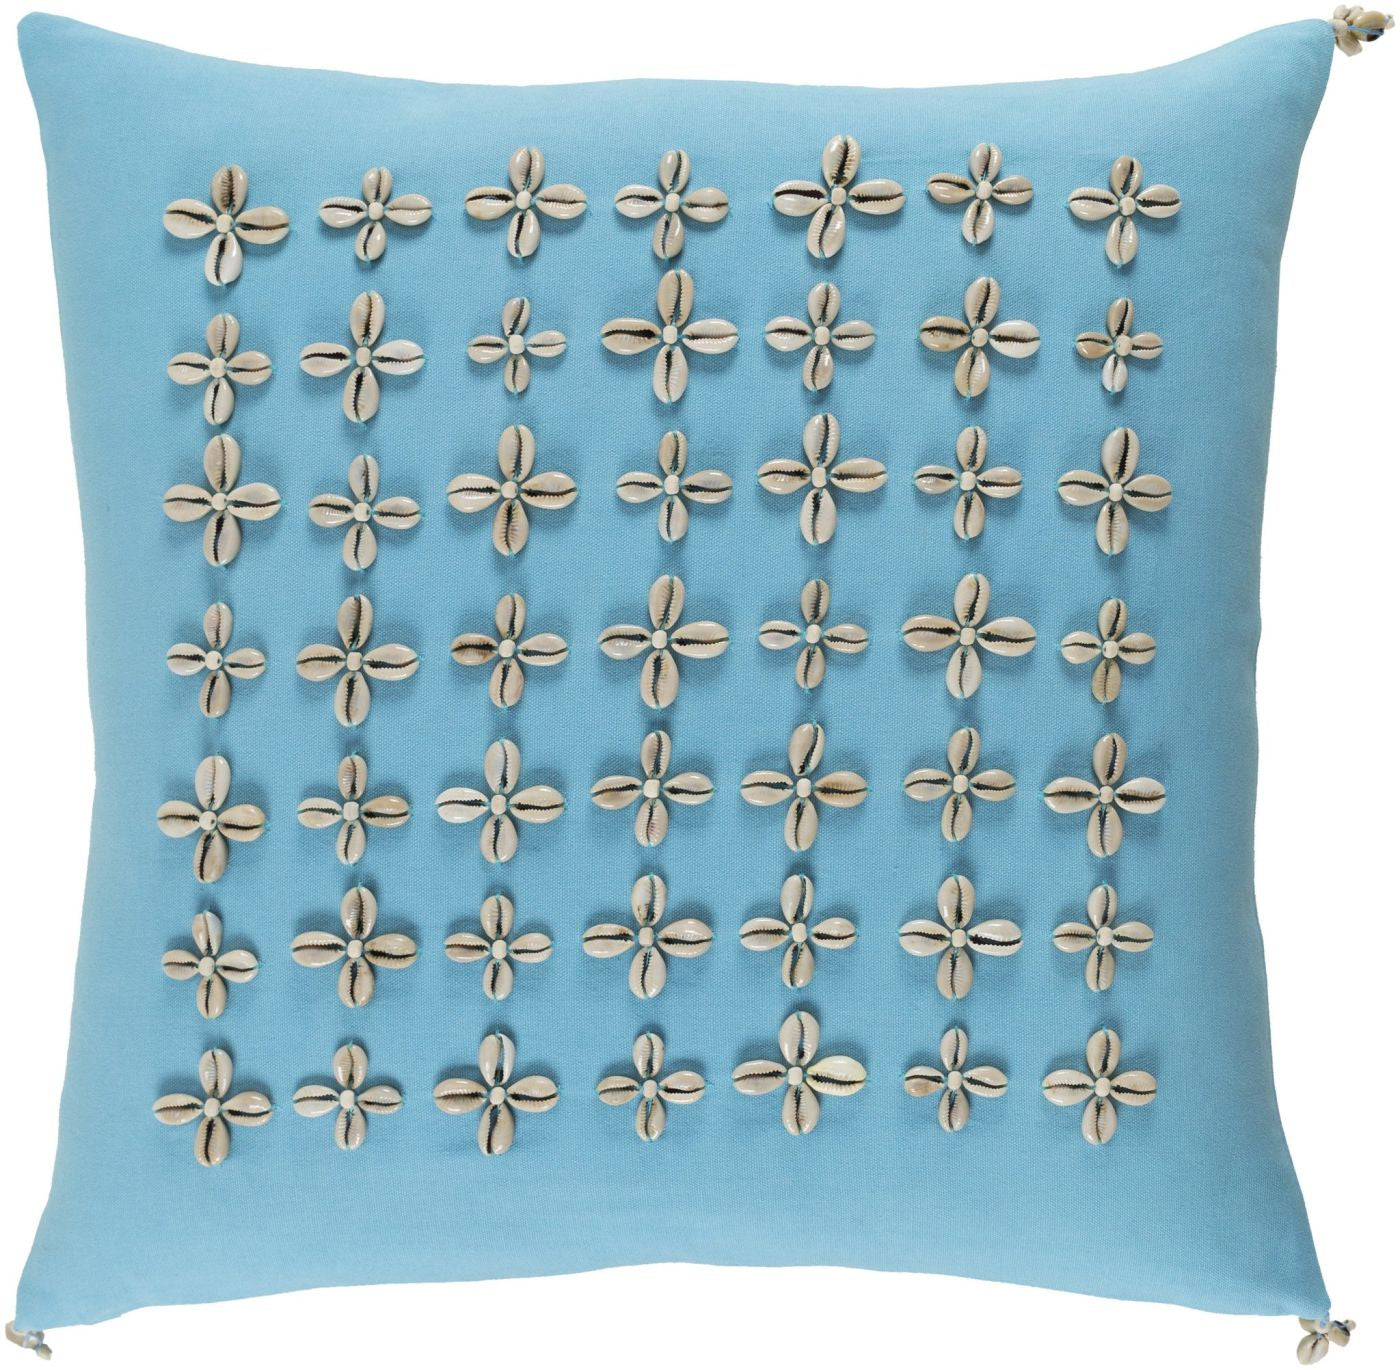 Cute Neutral Throw Pillows : Surya Lelei Throw Pillow Blue, Neutral LLI001-2222D. Only $97.80 at Contemporary Furniture ...